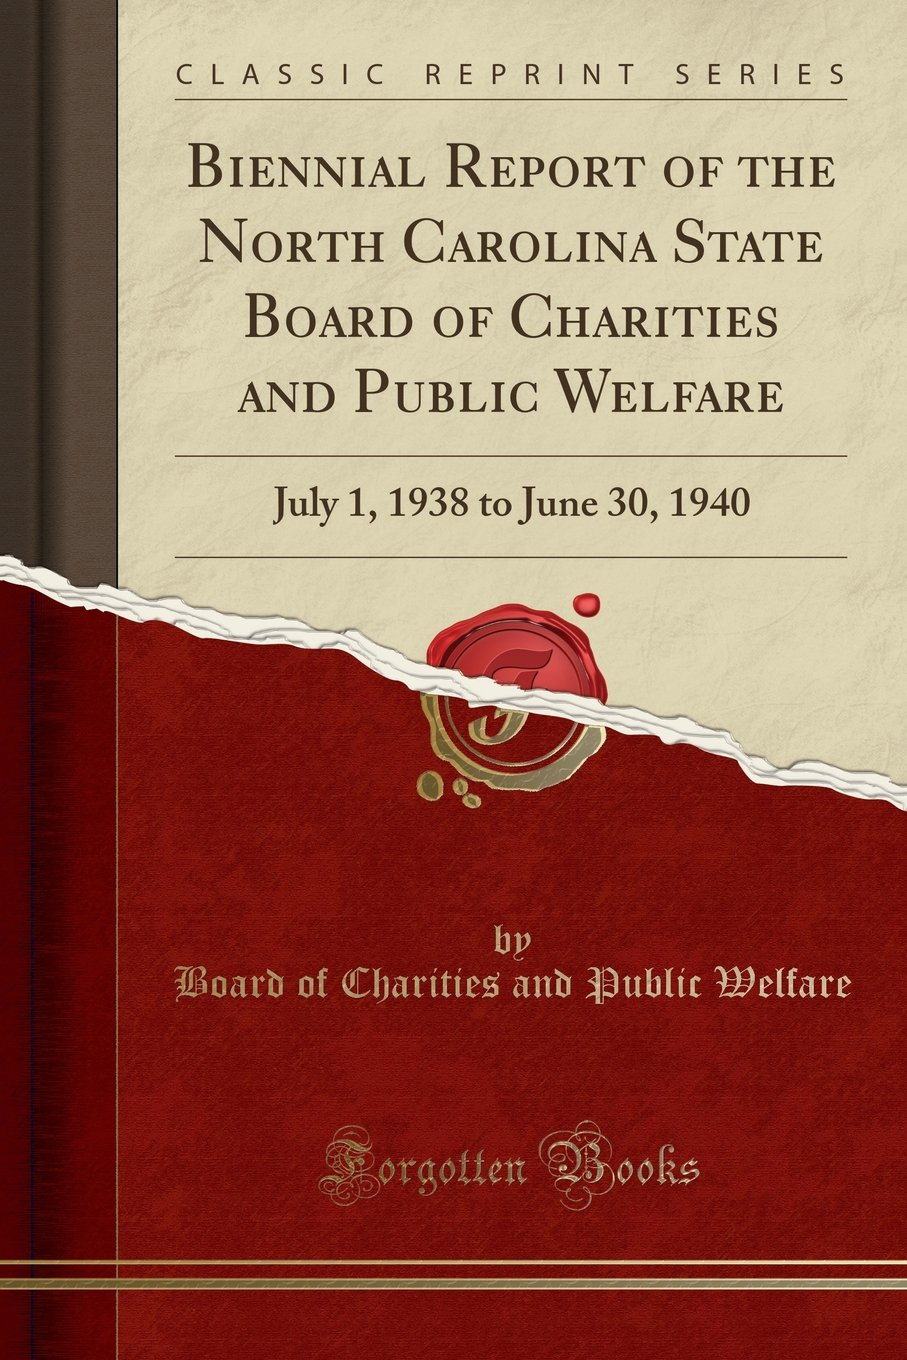 Read Online Biennial Report of the North Carolina State Board of Charities and Public Welfare: July 1, 1938 to June 30, 1940 (Classic Reprint) ebook